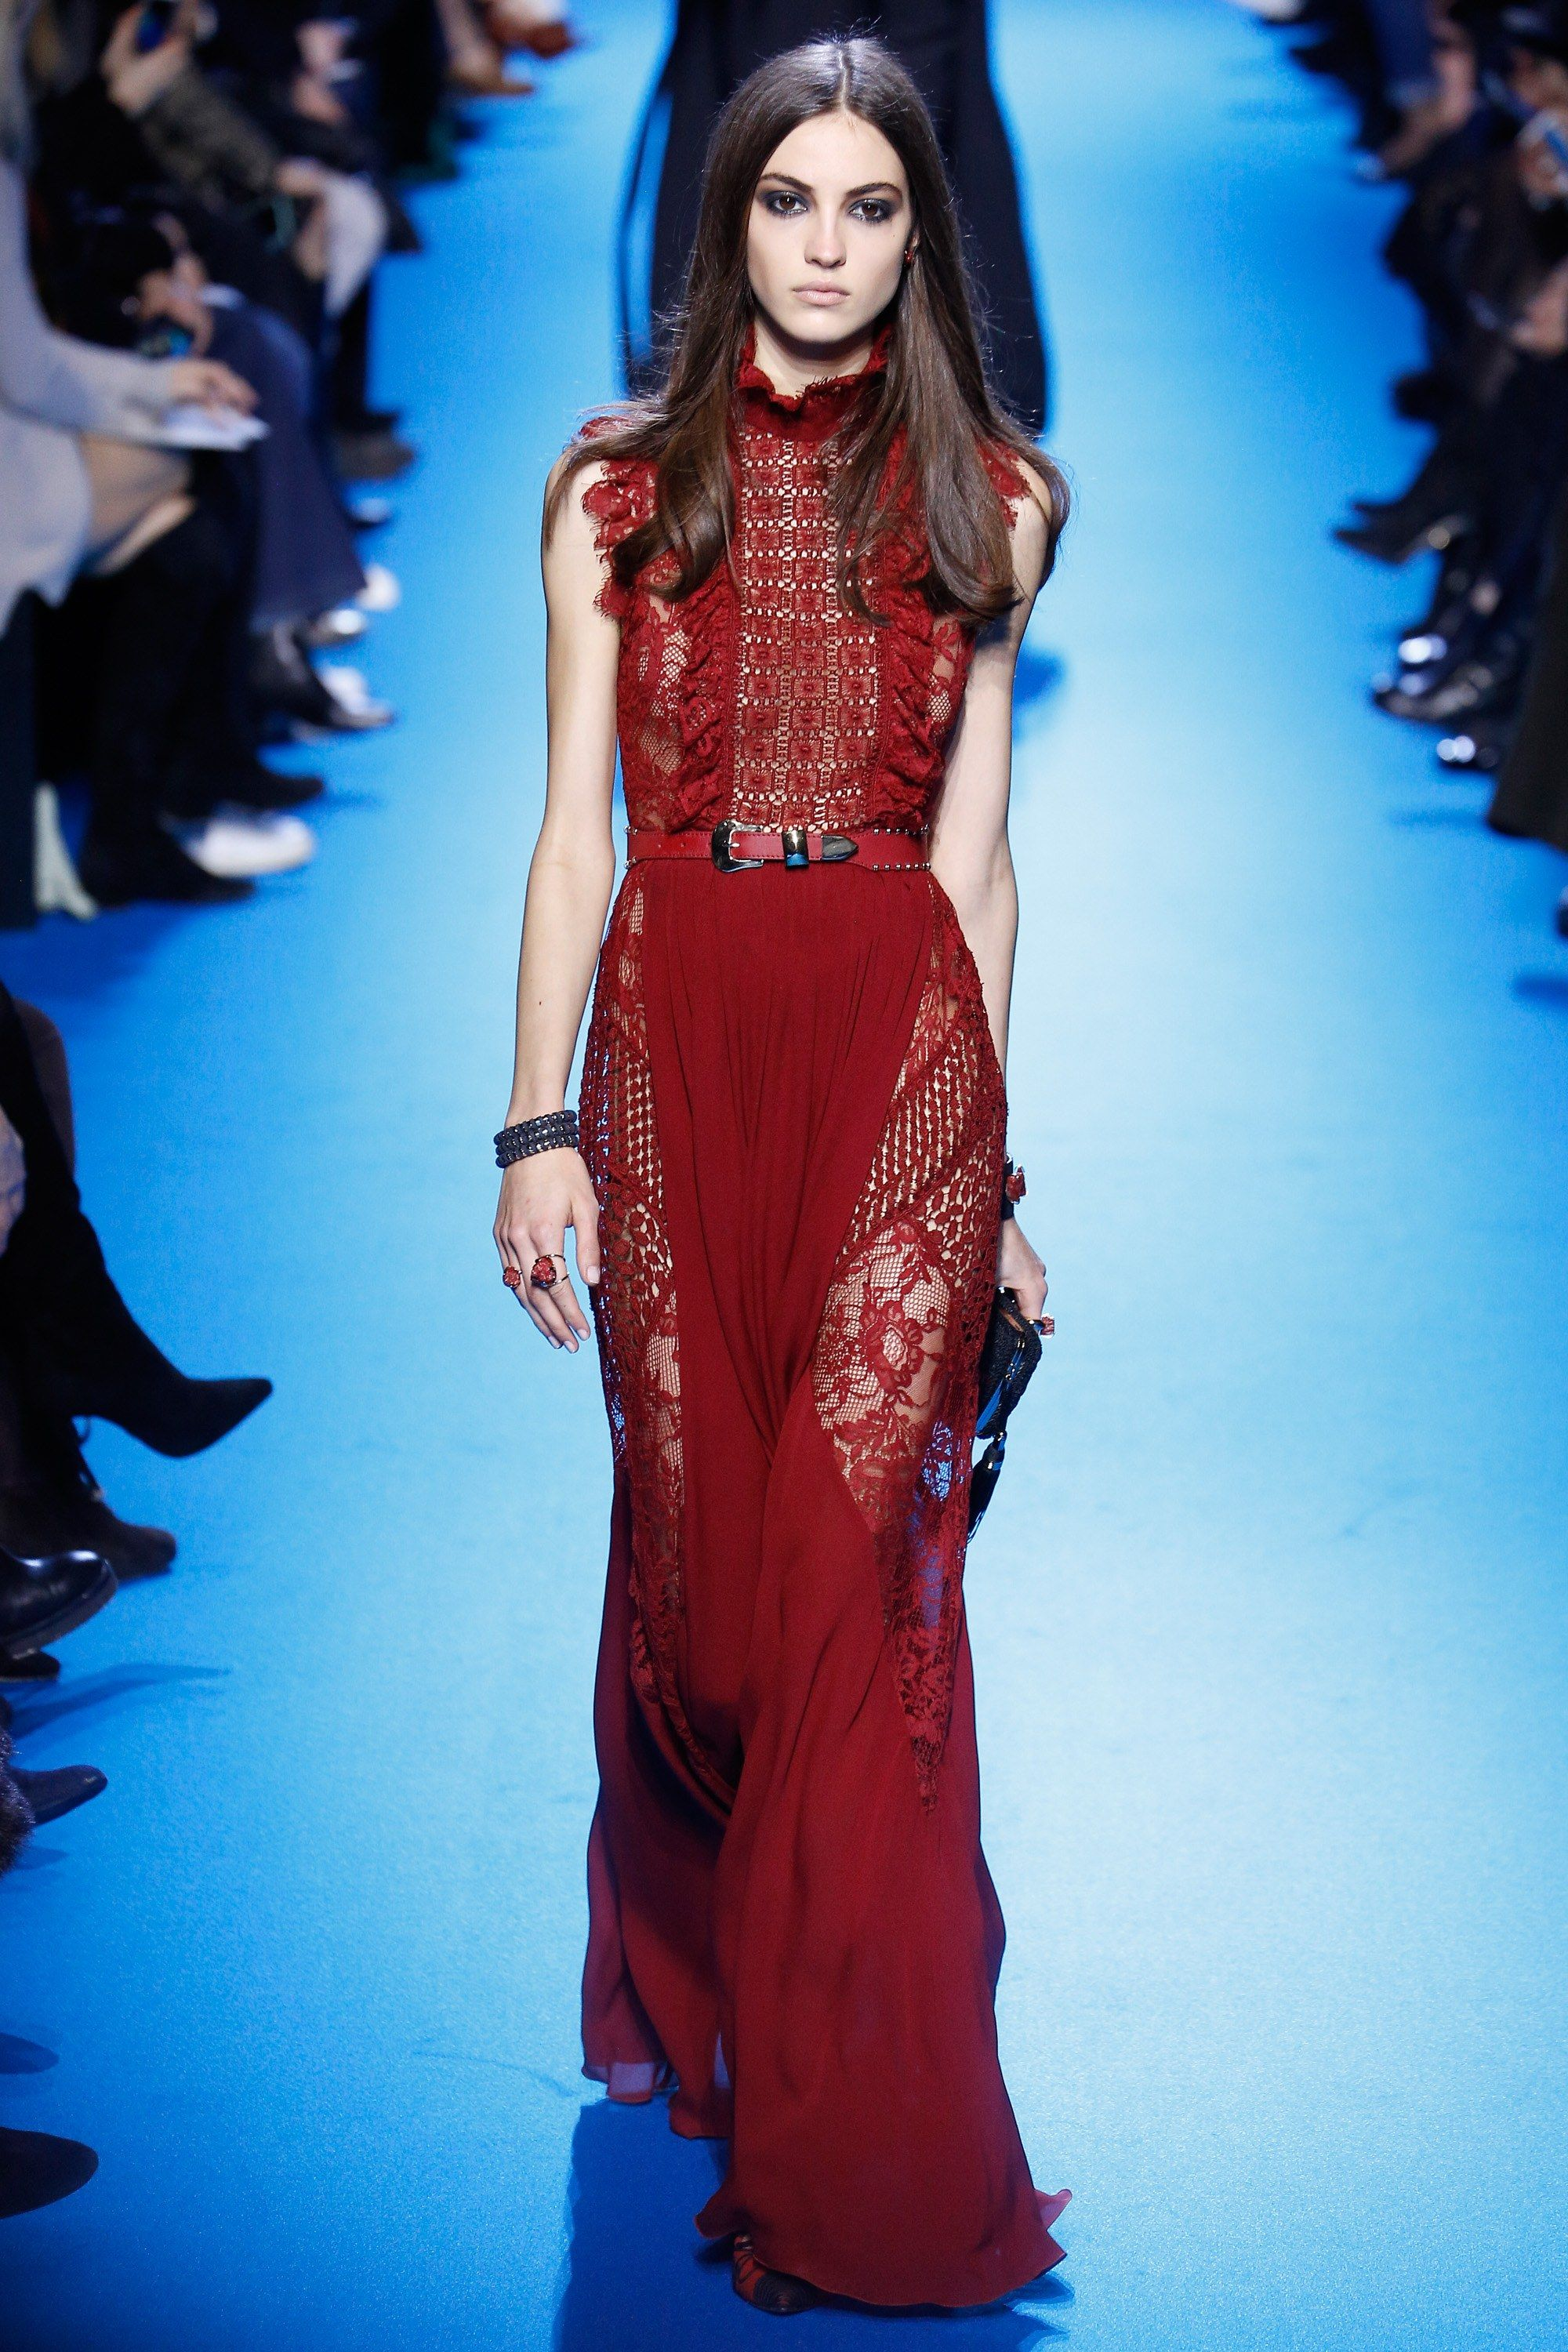 Elie Saab Fall 2016 Ready-to-Wear Fashion Show | Elie saab ...